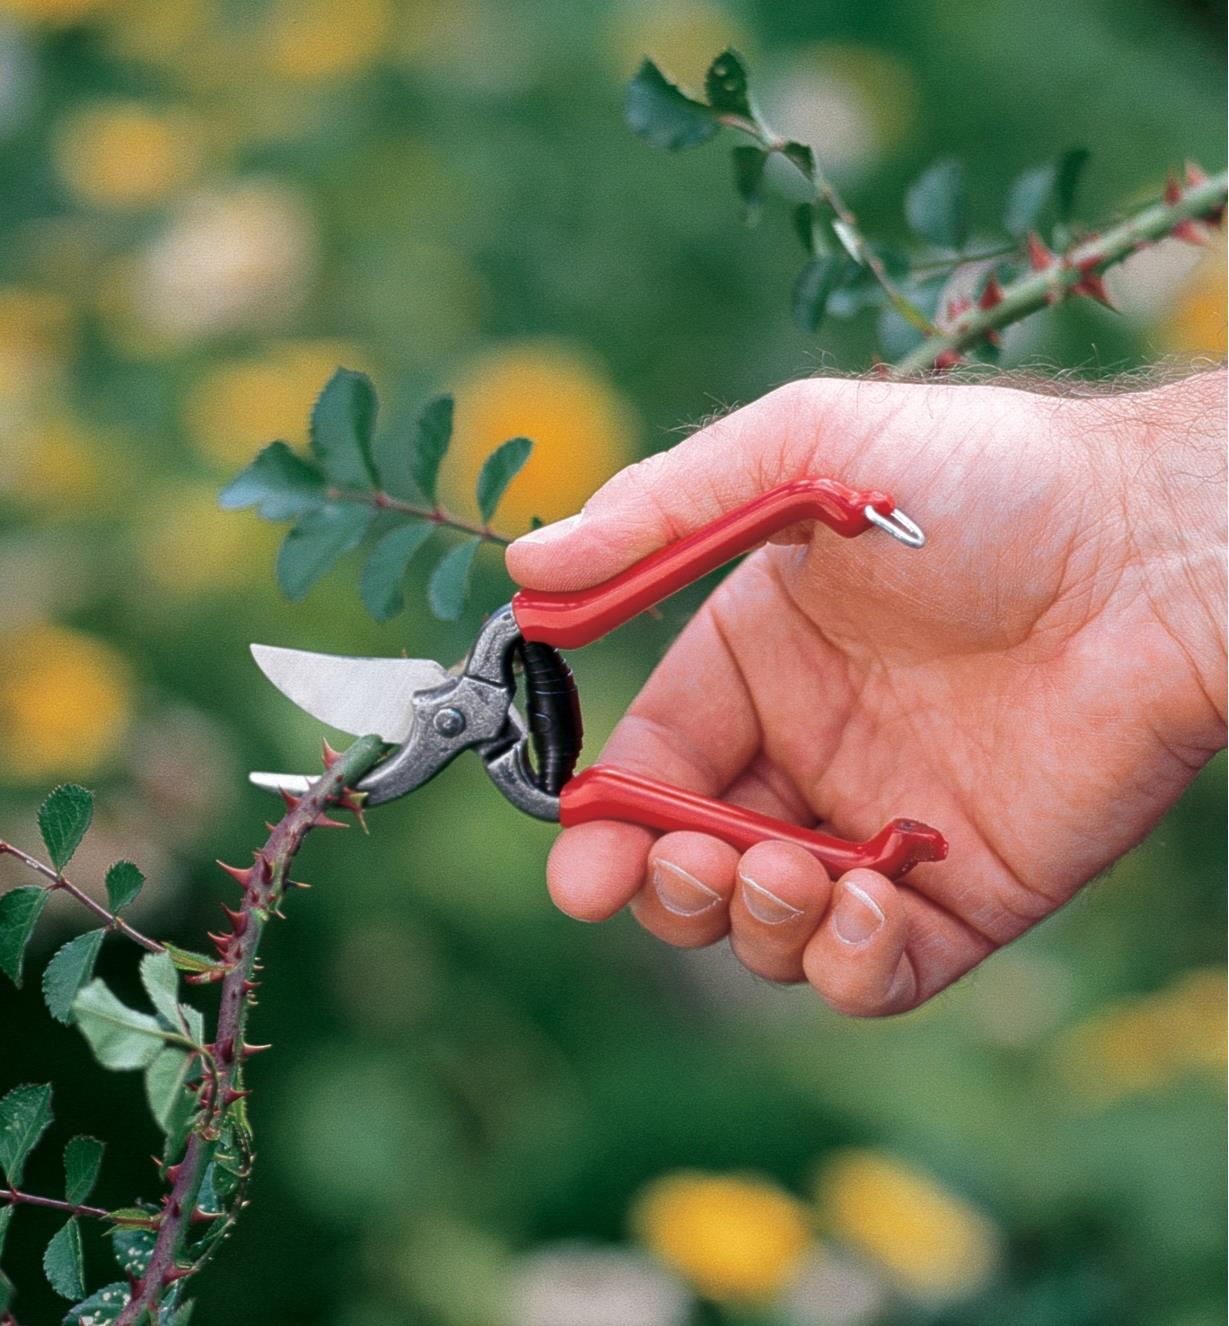 Forged Pocket Pruner being used to prune a rosebush